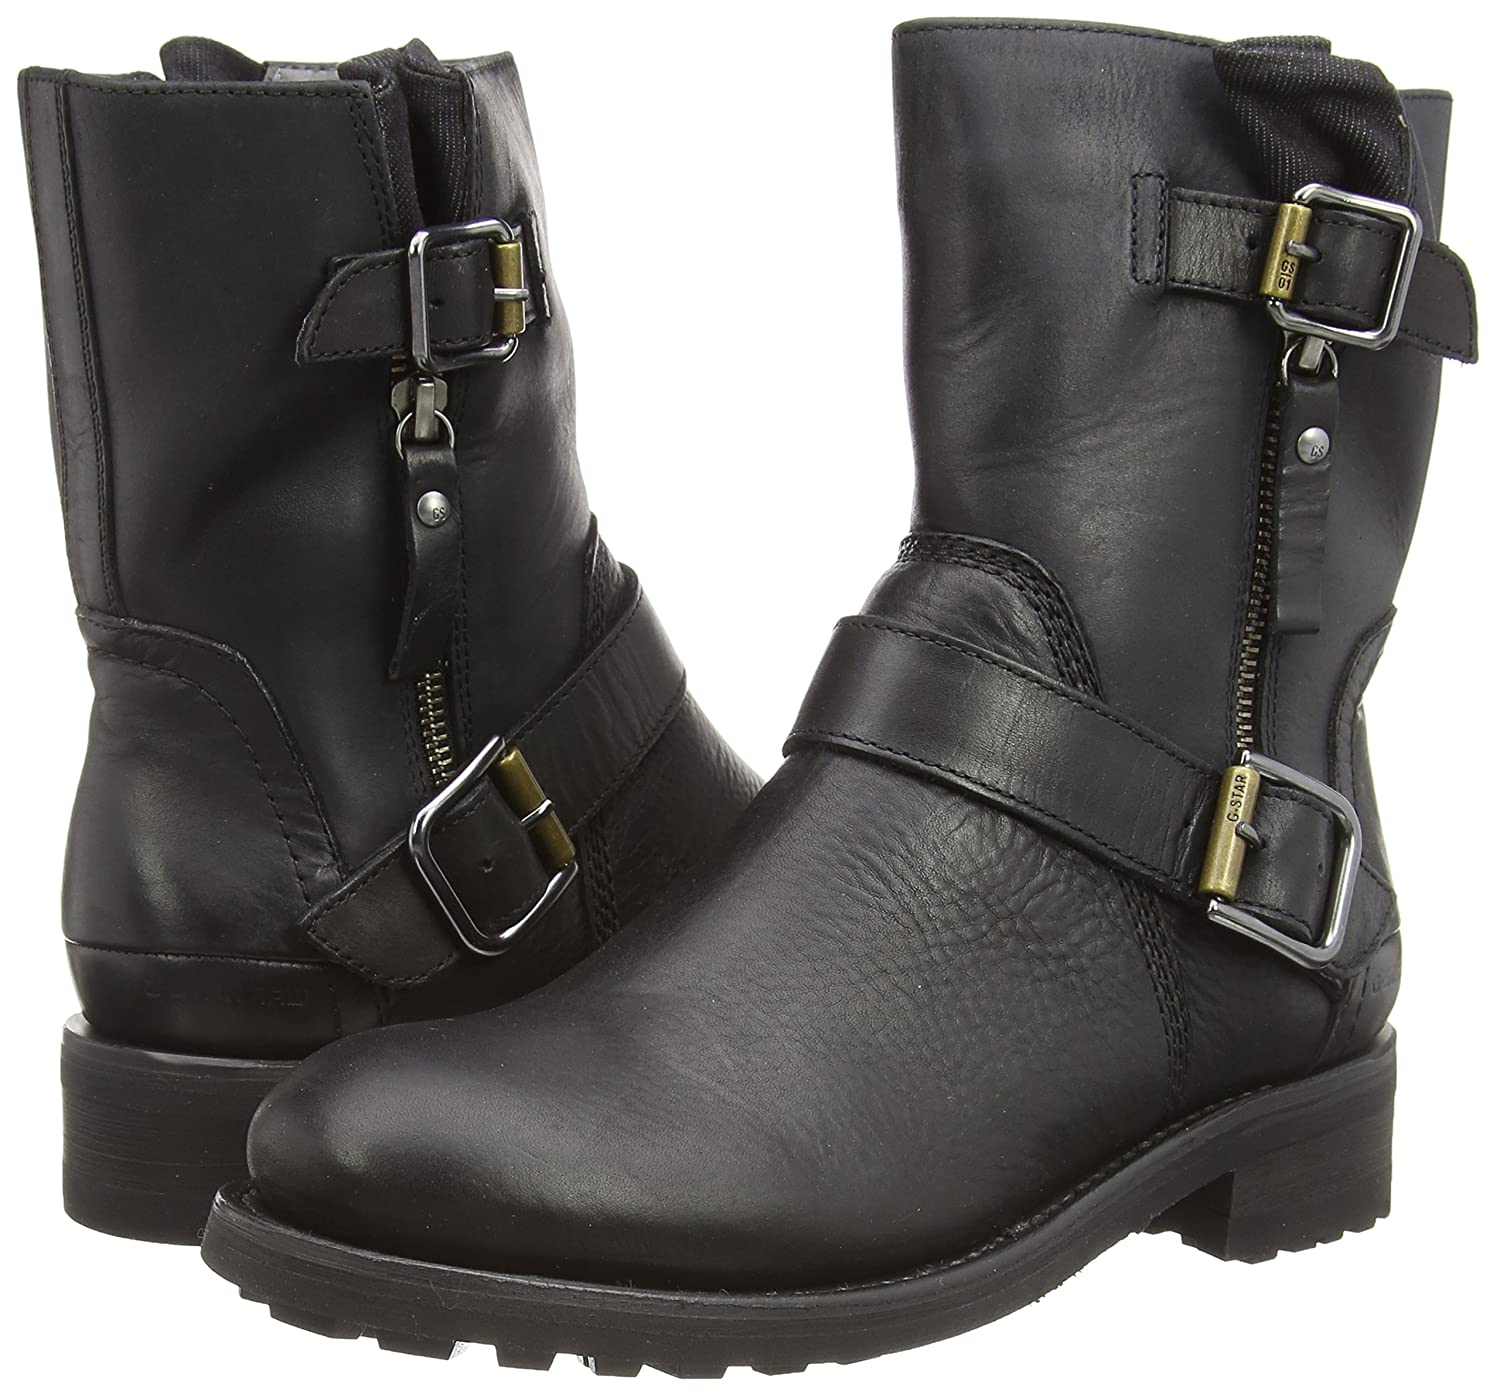 GStar Foundry Rigger II Womens Combat Boots Black Black 3 UK 36 EU Amazoncouk Shoes  Bags